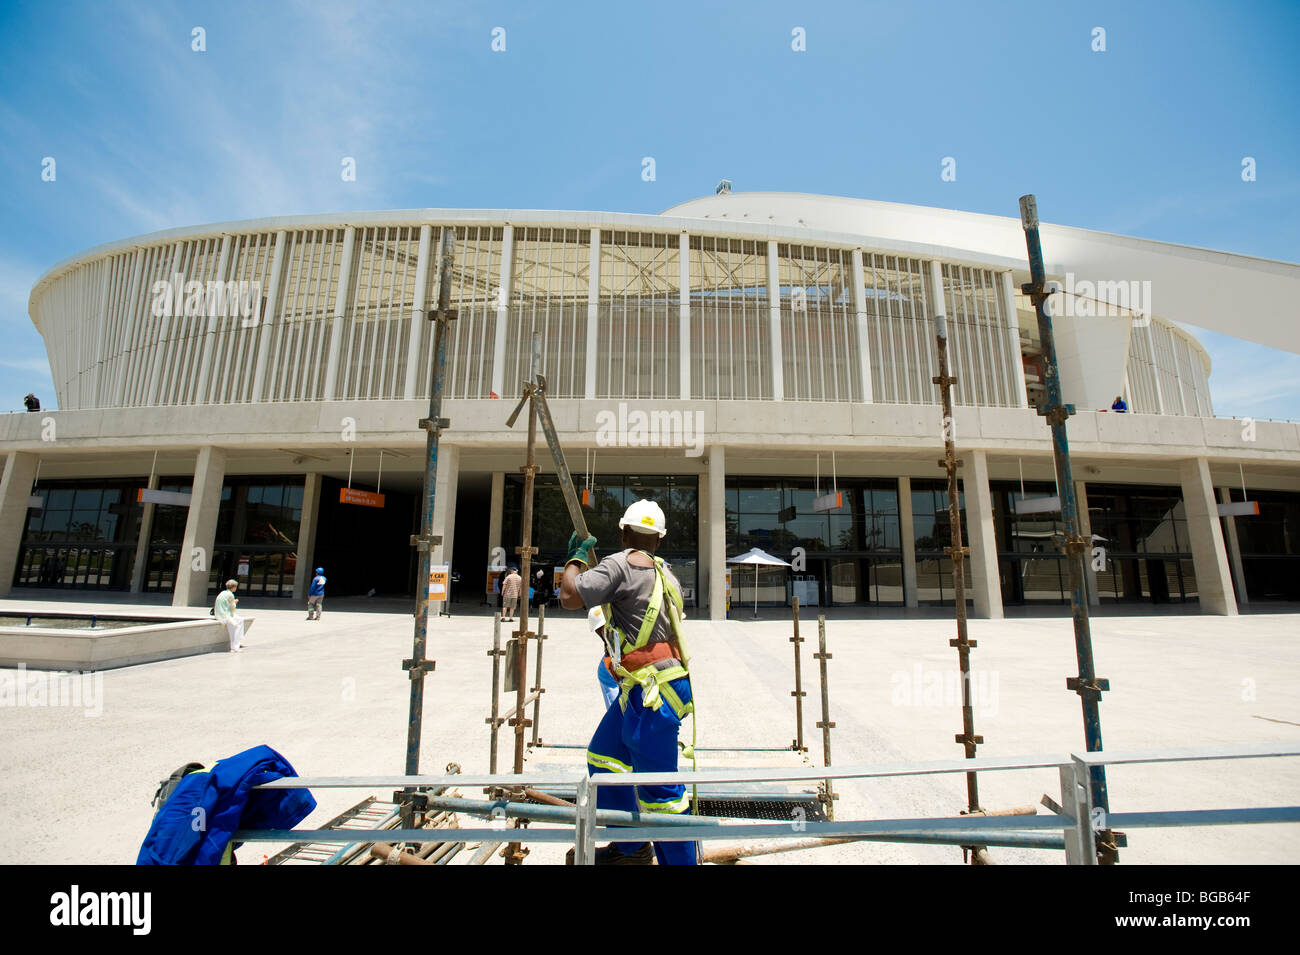 Construction workers finishing the Durban Moses Mabhida Soccer Stadium. Durban, South Africa - Stock Image